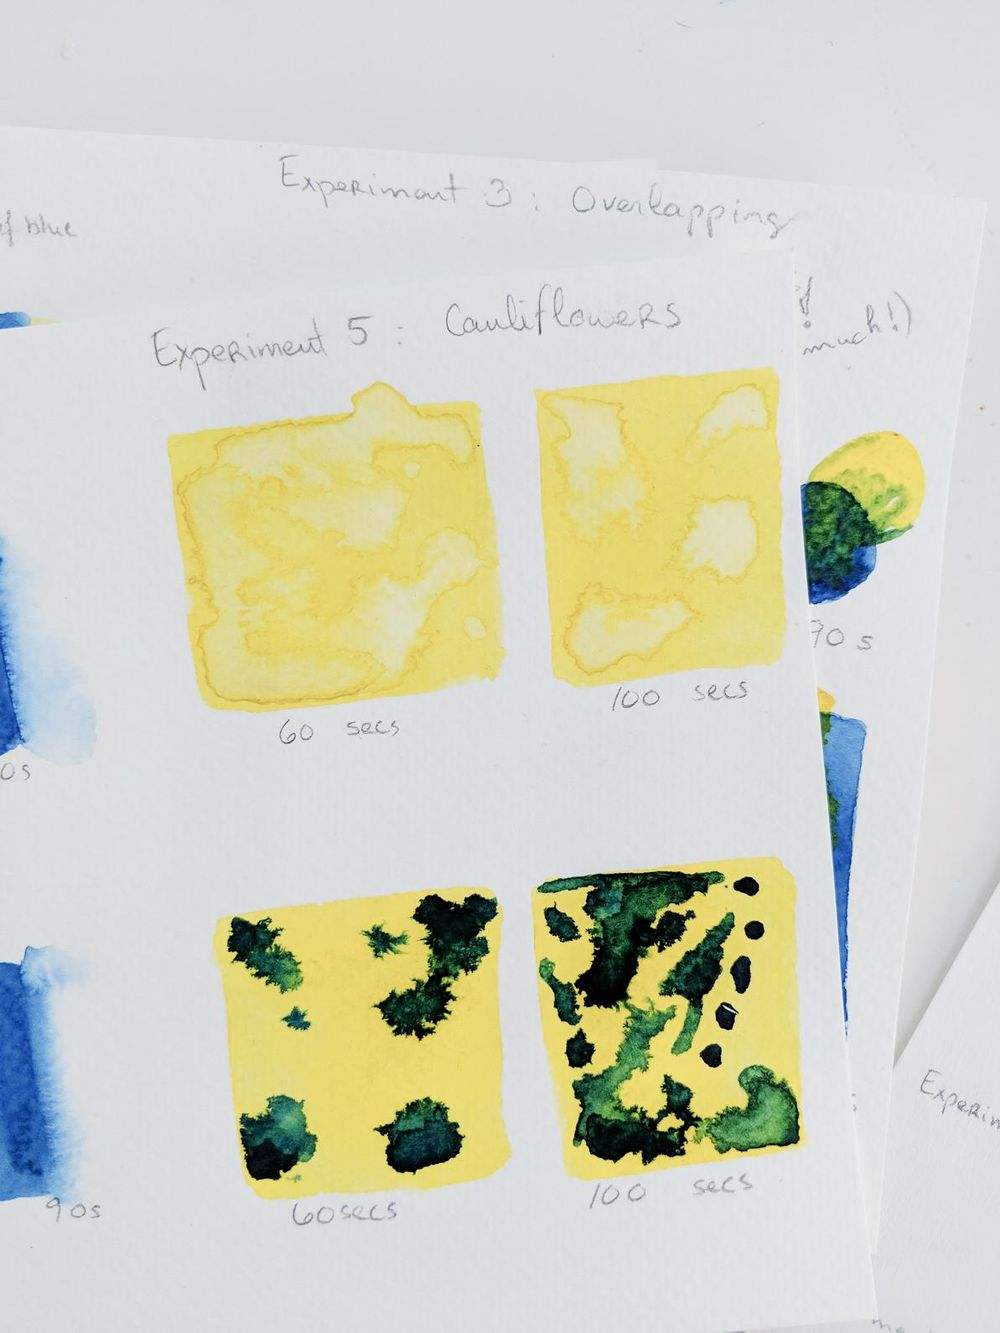 Experiments in watercolors with Ohn Mar Win - image 6 - student project